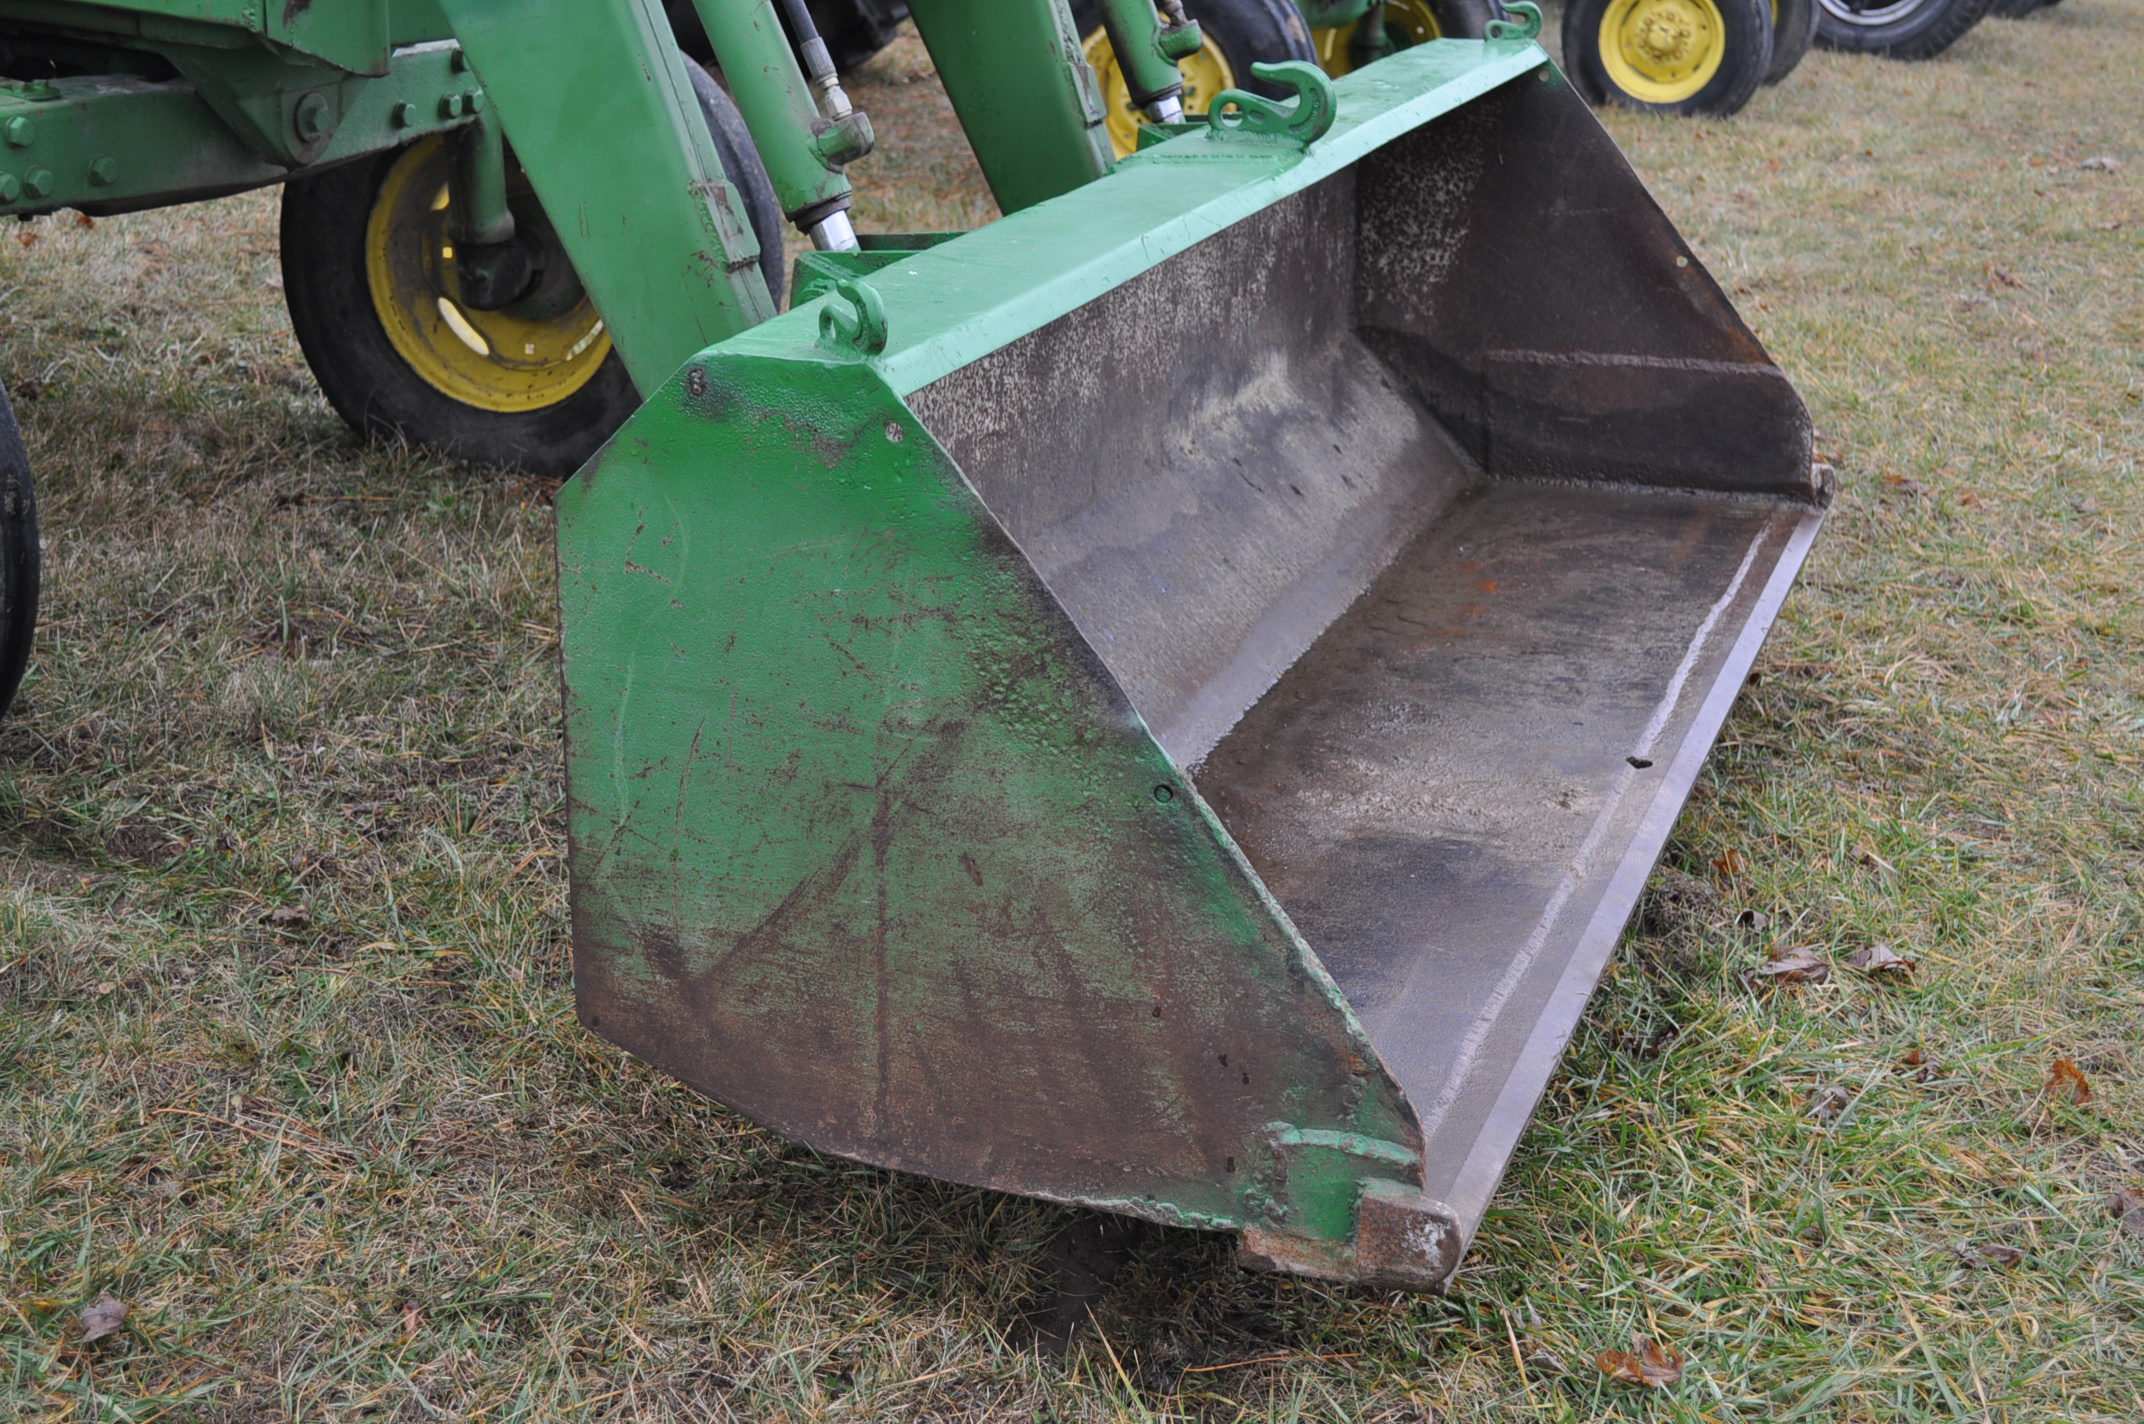 John Deere 4030 tractor, diesel, 18.4-34 rear duals, rear wts, 9.5-15 front, 4-post canopy, Syncro, - Image 17 of 26